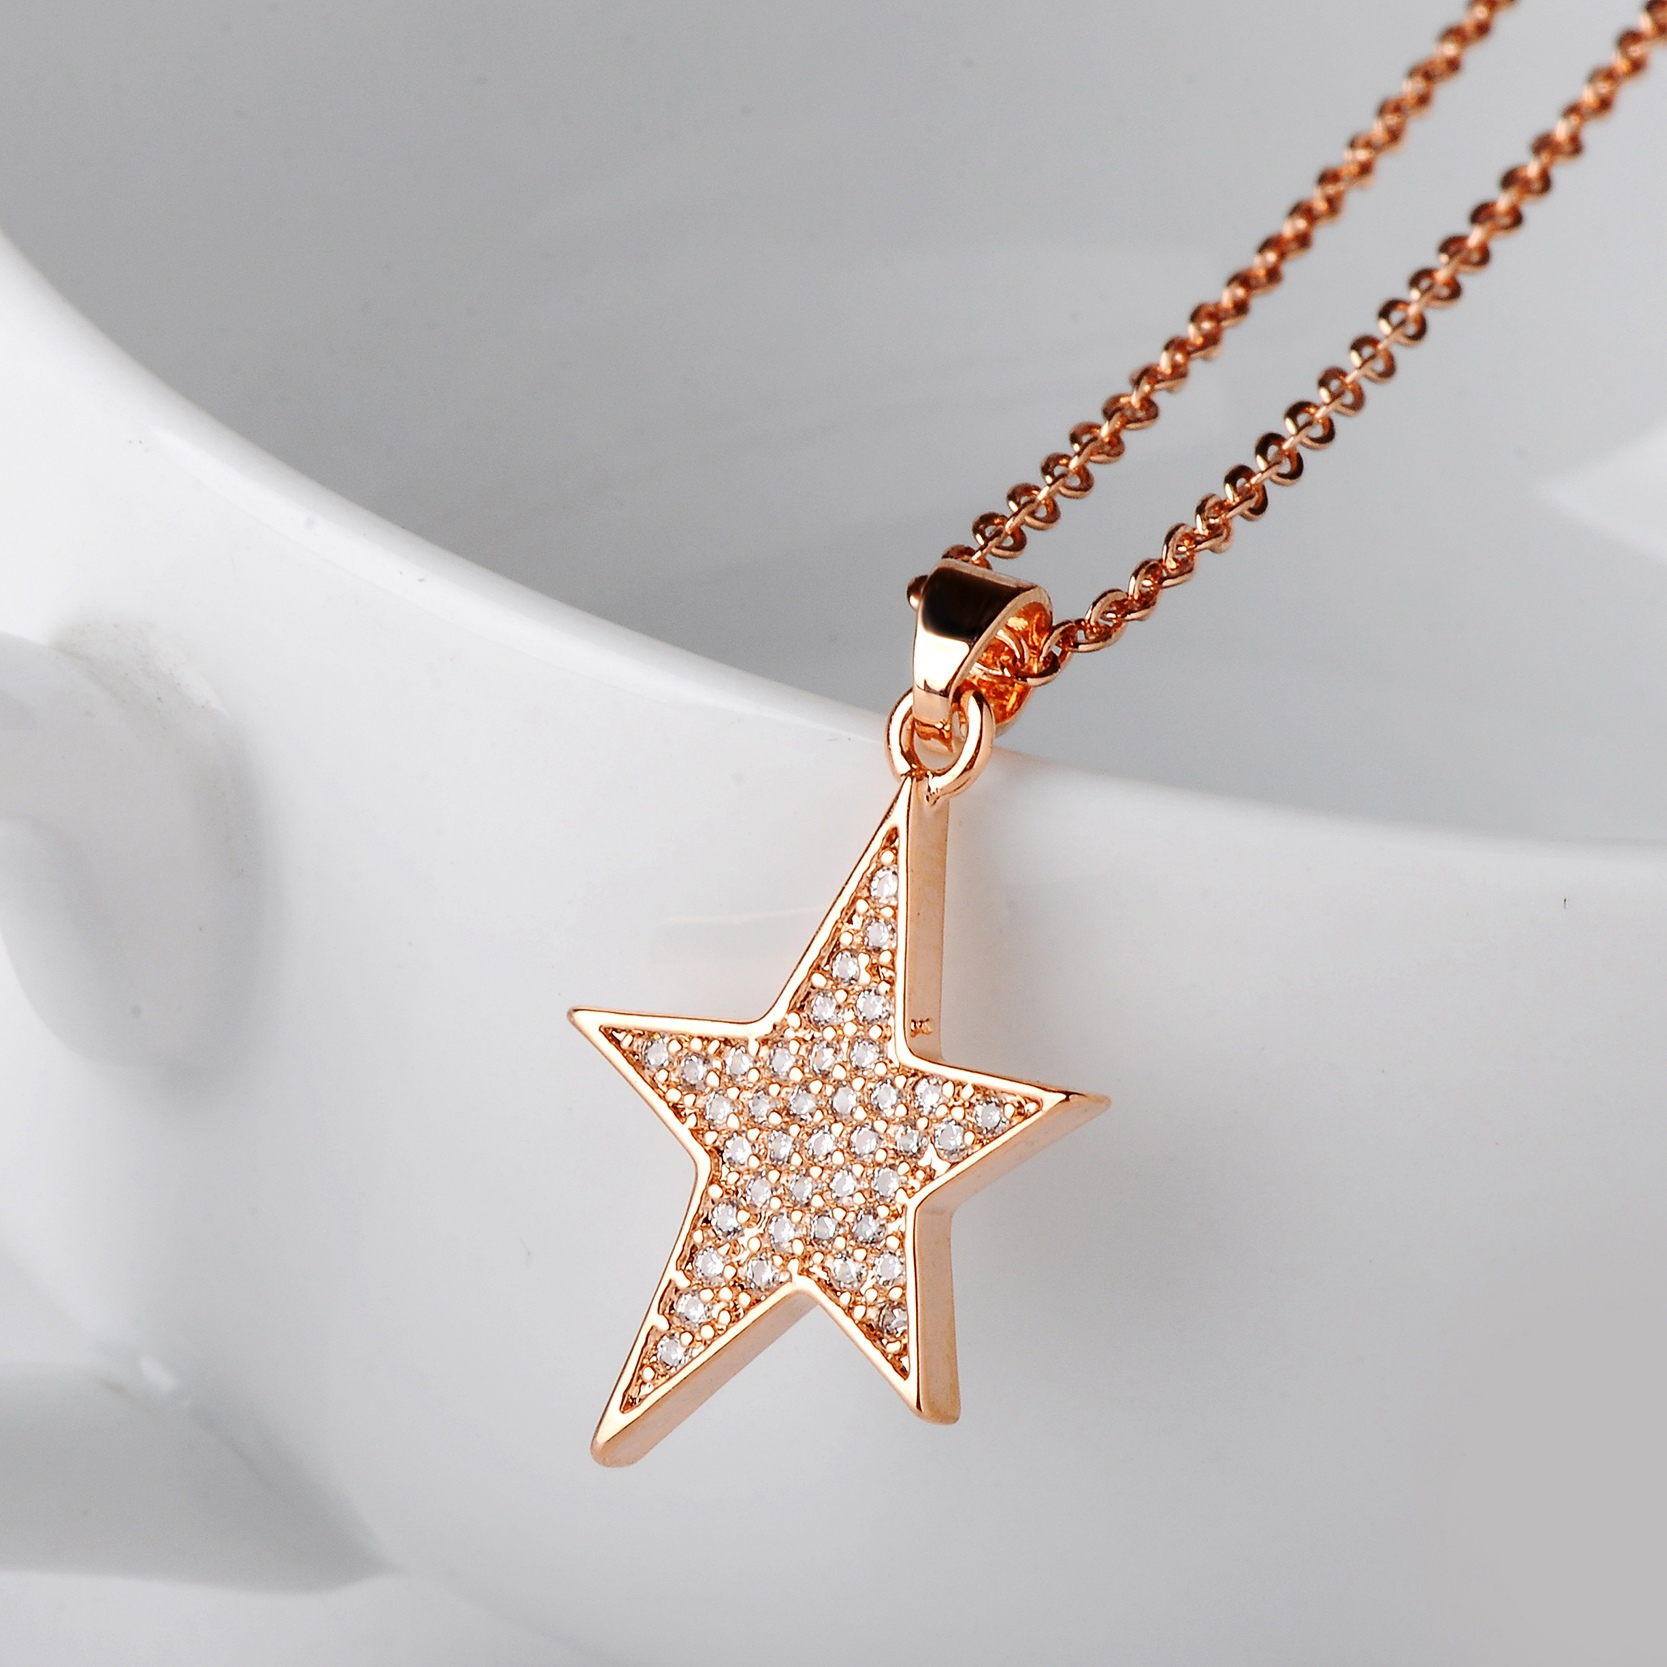 Drole 2017 new arrival rose gold silver star shaped pendant drole 2017 new arrival rose gold silver star shaped pendant necklace for women zircon choker valentines day gift in pendant necklaces from jewelry mozeypictures Image collections